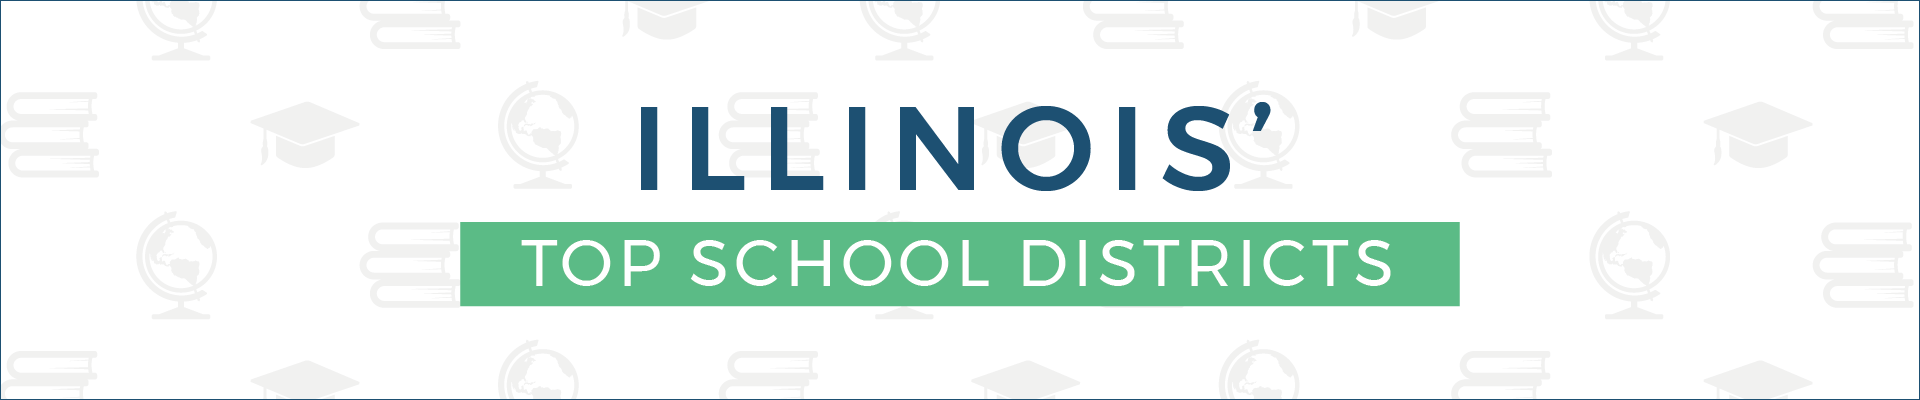 illinois_top_school_district_banner_2020